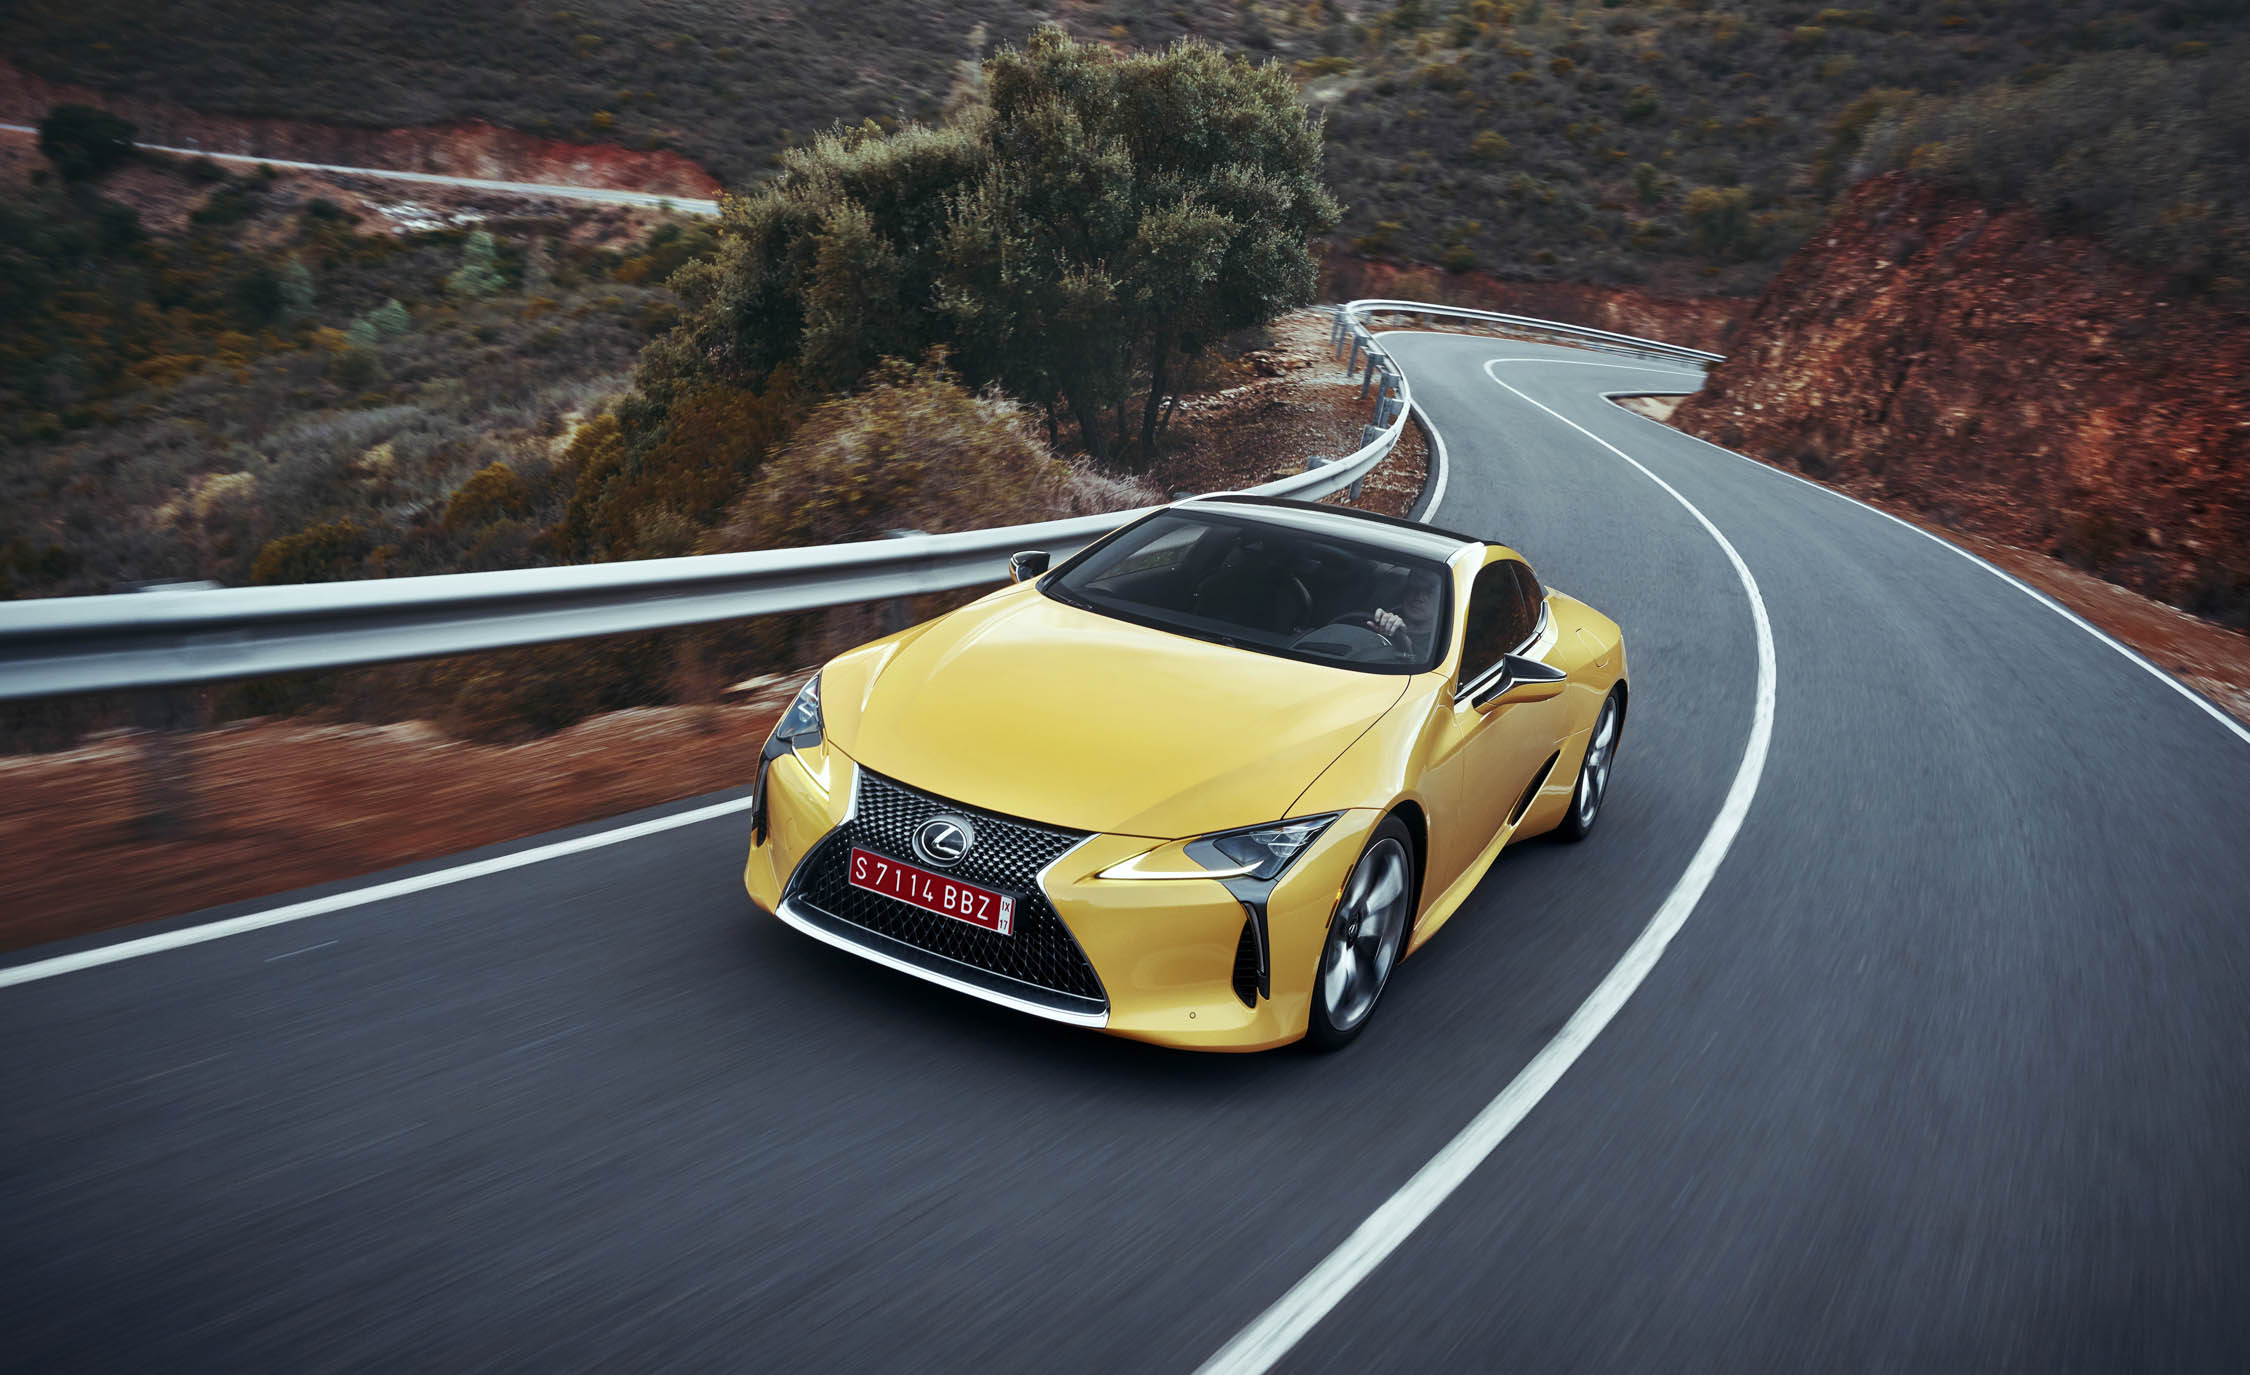 2018 Lexus Lc500 Yellow Test Drive Front And Side (View 74 of 84)